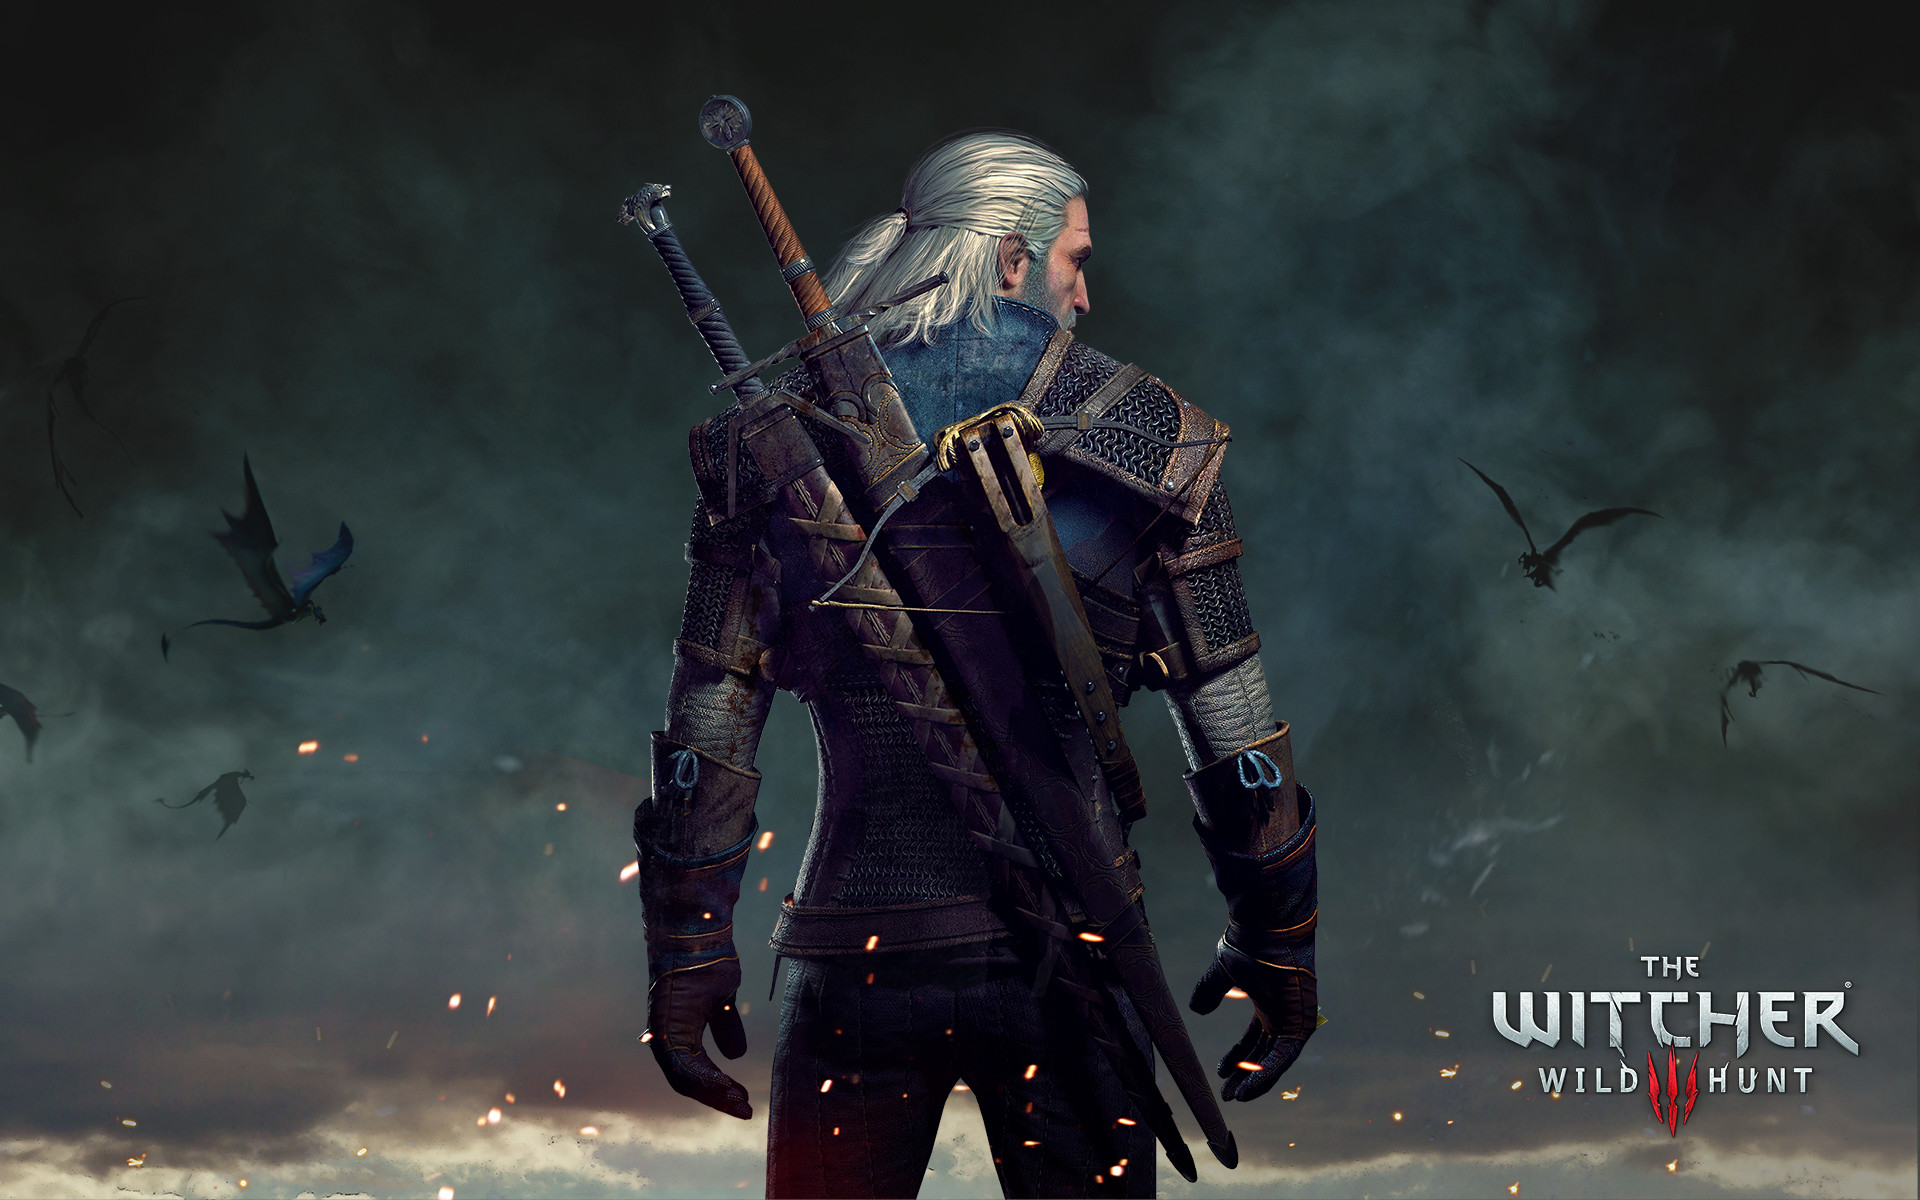 Witcher 3 Wallpapers, QLJ784 Collection